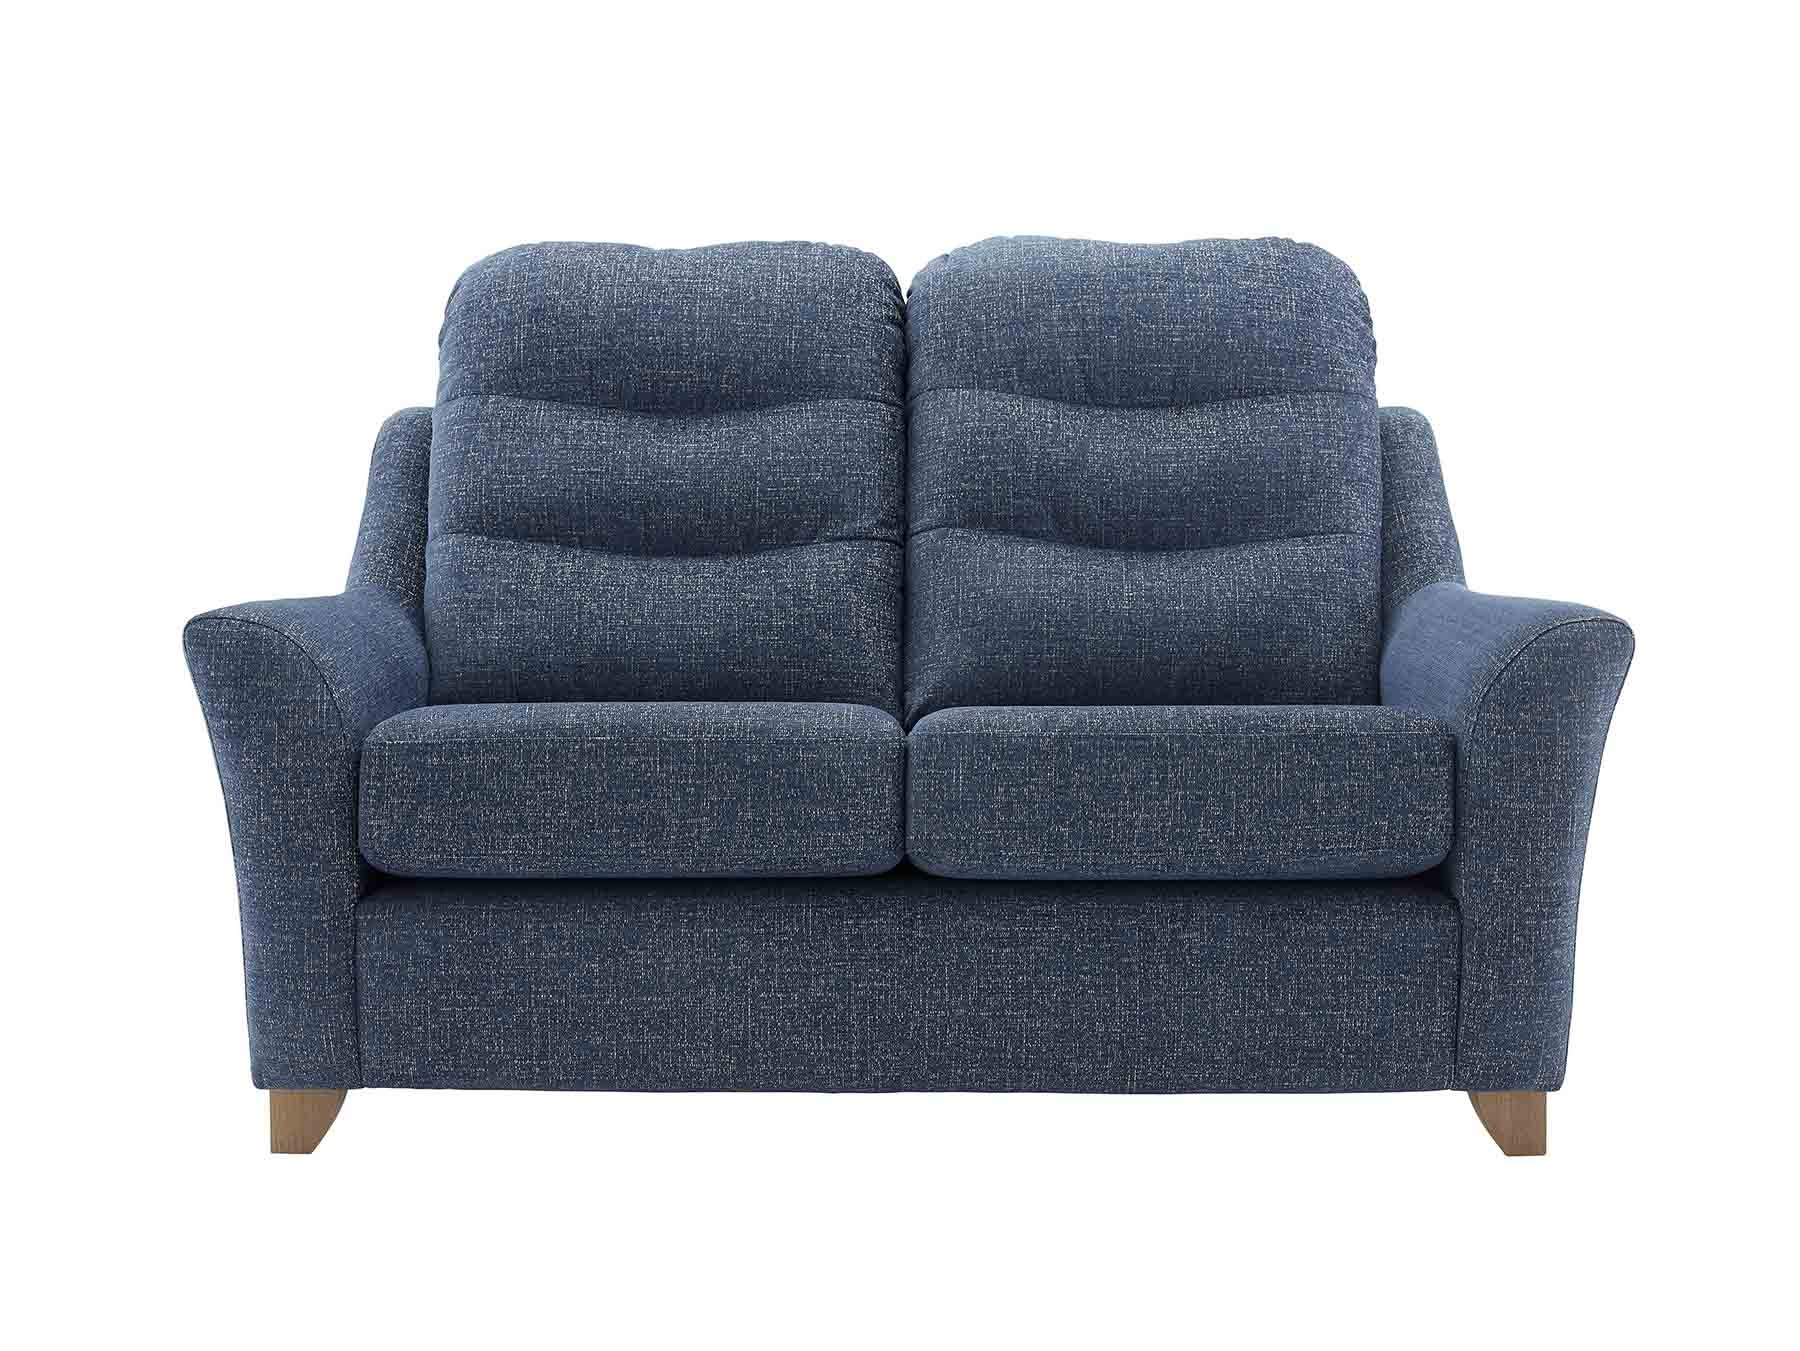 G Plan Tate Leather 2 Seater Sofa | Tr Hayes – Furniture Store, Bath For Tate Ii Sofa Chairs (Photo 1 of 20)